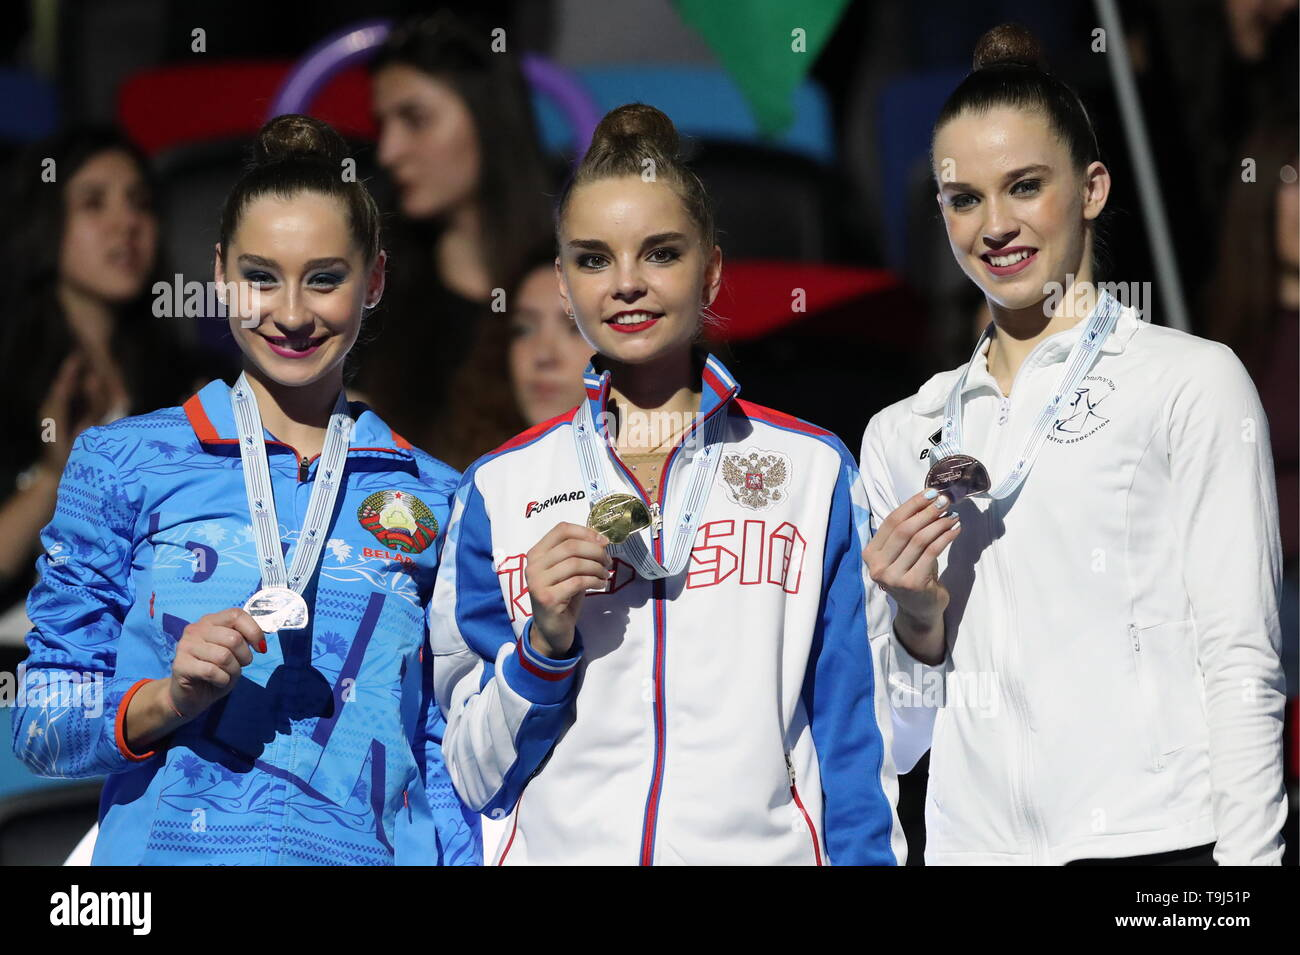 Baku, Azerbaijan. 19th May, 2019. BAKU, AZERBAIJAN - MAY 19, 2019: Silver medallis Yekaterina Galkina of Belarus, gold medallist Arina Averina of Russia, and bronze medallist Nicol Zelikman of Israel, from left, at a victory ceremony for the individual hoop routine at the 2019 European Championships in Rhythmic Gymnastics. Sergei Savostyanov/TASS Credit: ITAR-TASS News Agency/Alamy Live News - Stock Image